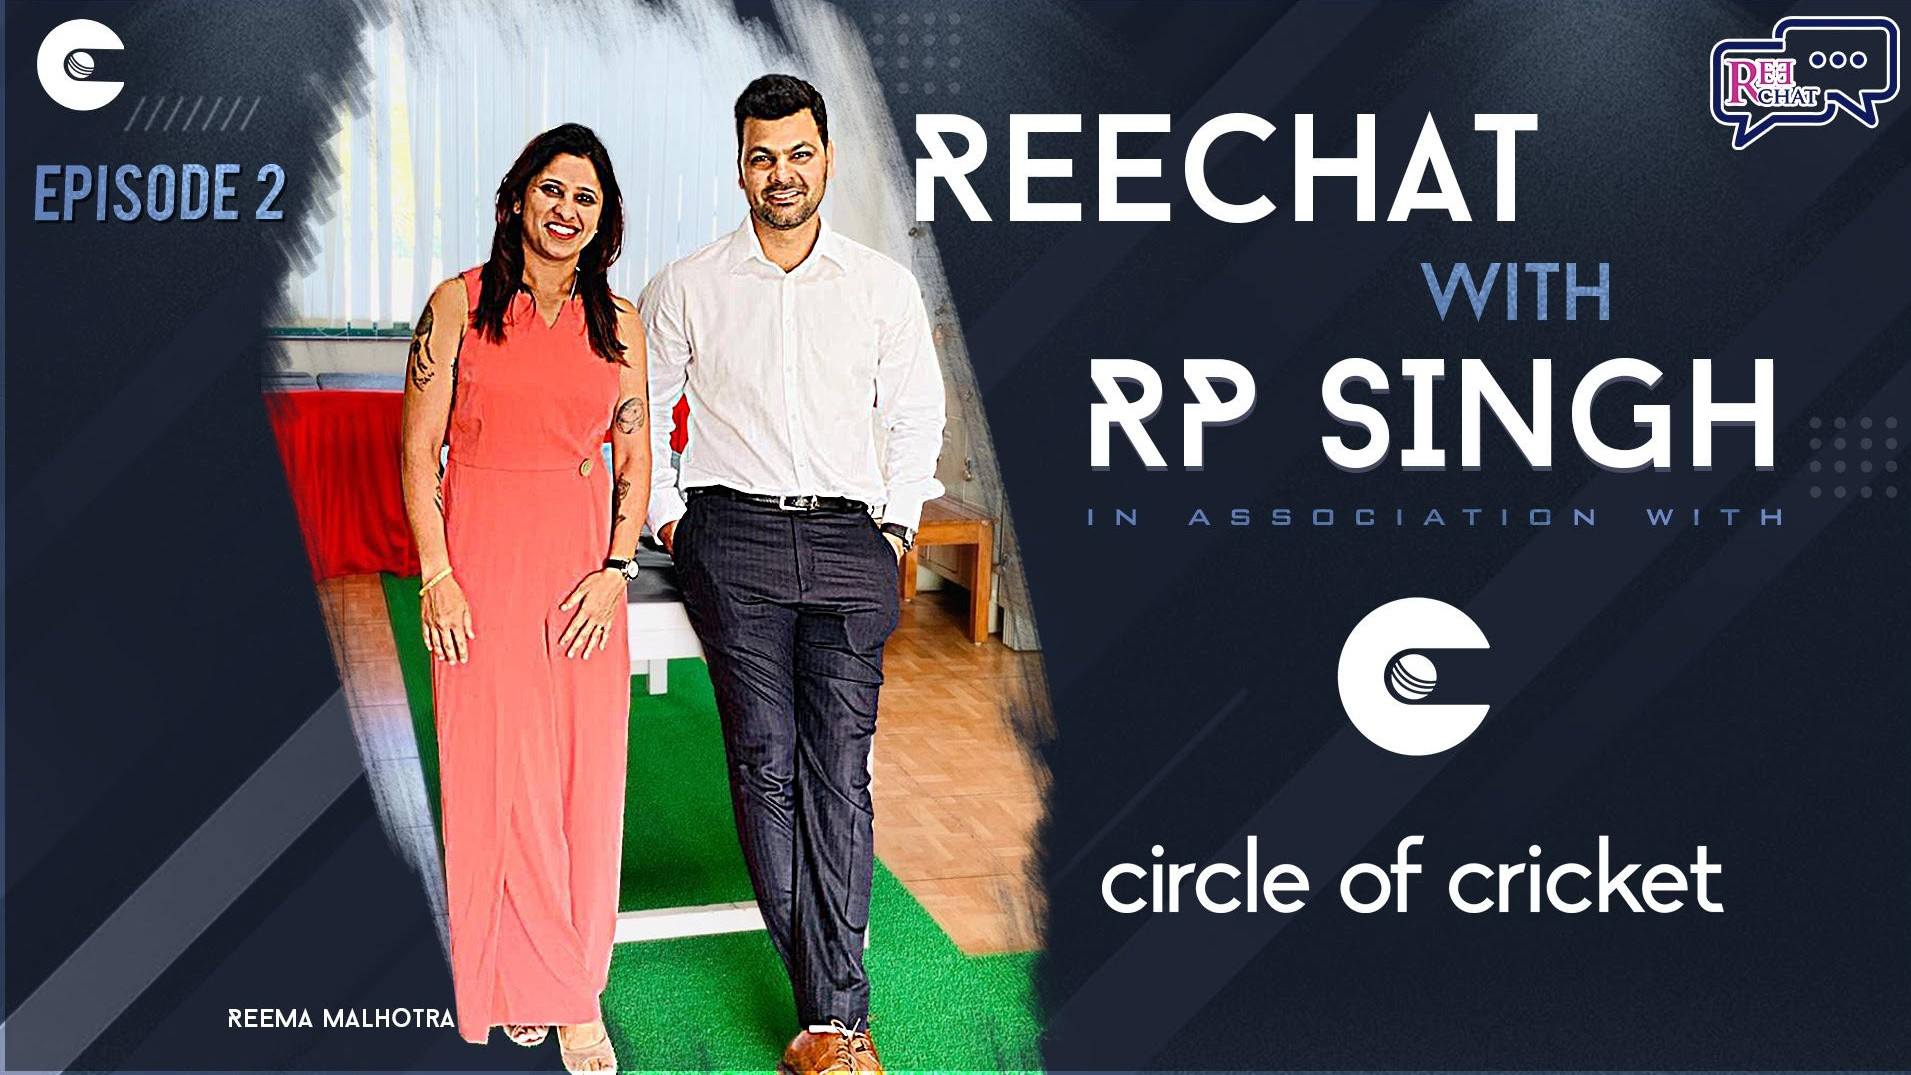 Exclusive: Circle of Cricket presents REECHAT hosted by Reema Malhotra; Episode.2 feat. RP Singh